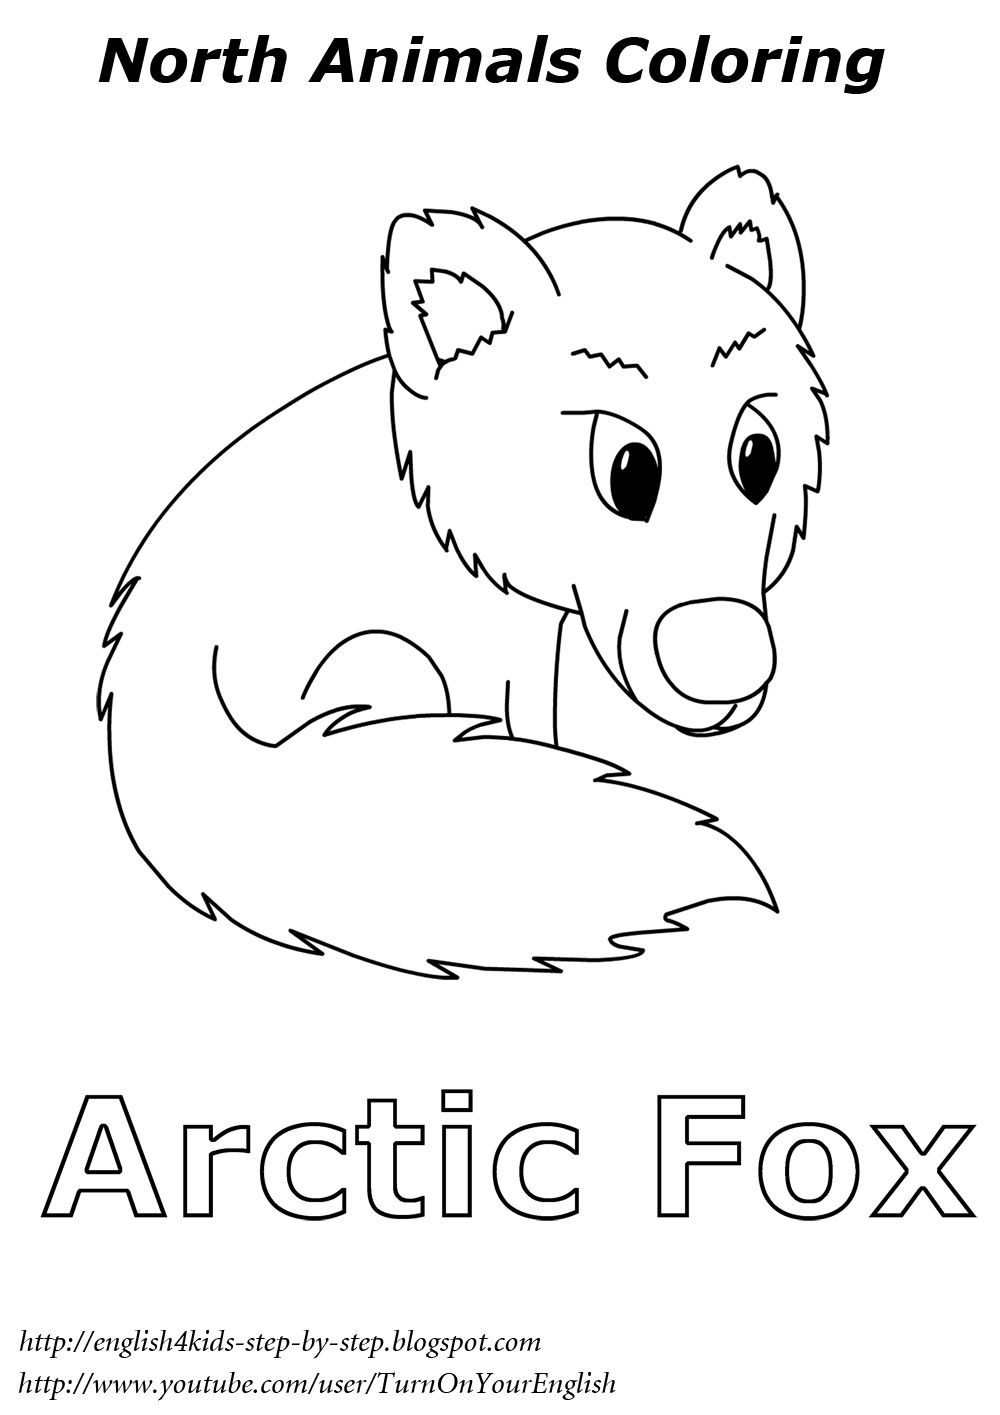 arctic fox coloring for kids | School - Polar Bears Etc. | Pinterest ...